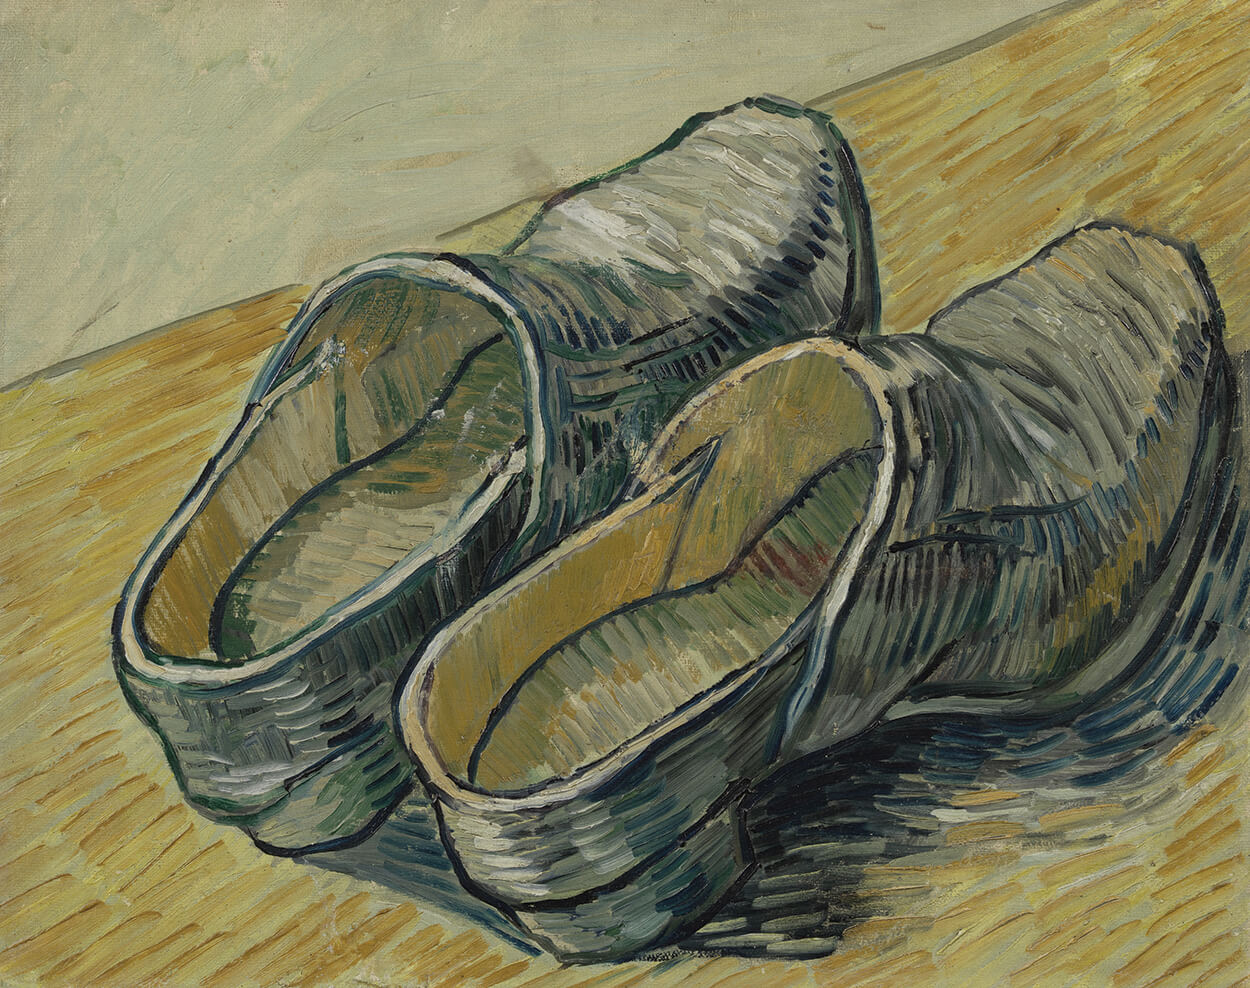 A Pair of Leather Clogs, autumn 1889, oil on canvas by Vincent van Gogh.